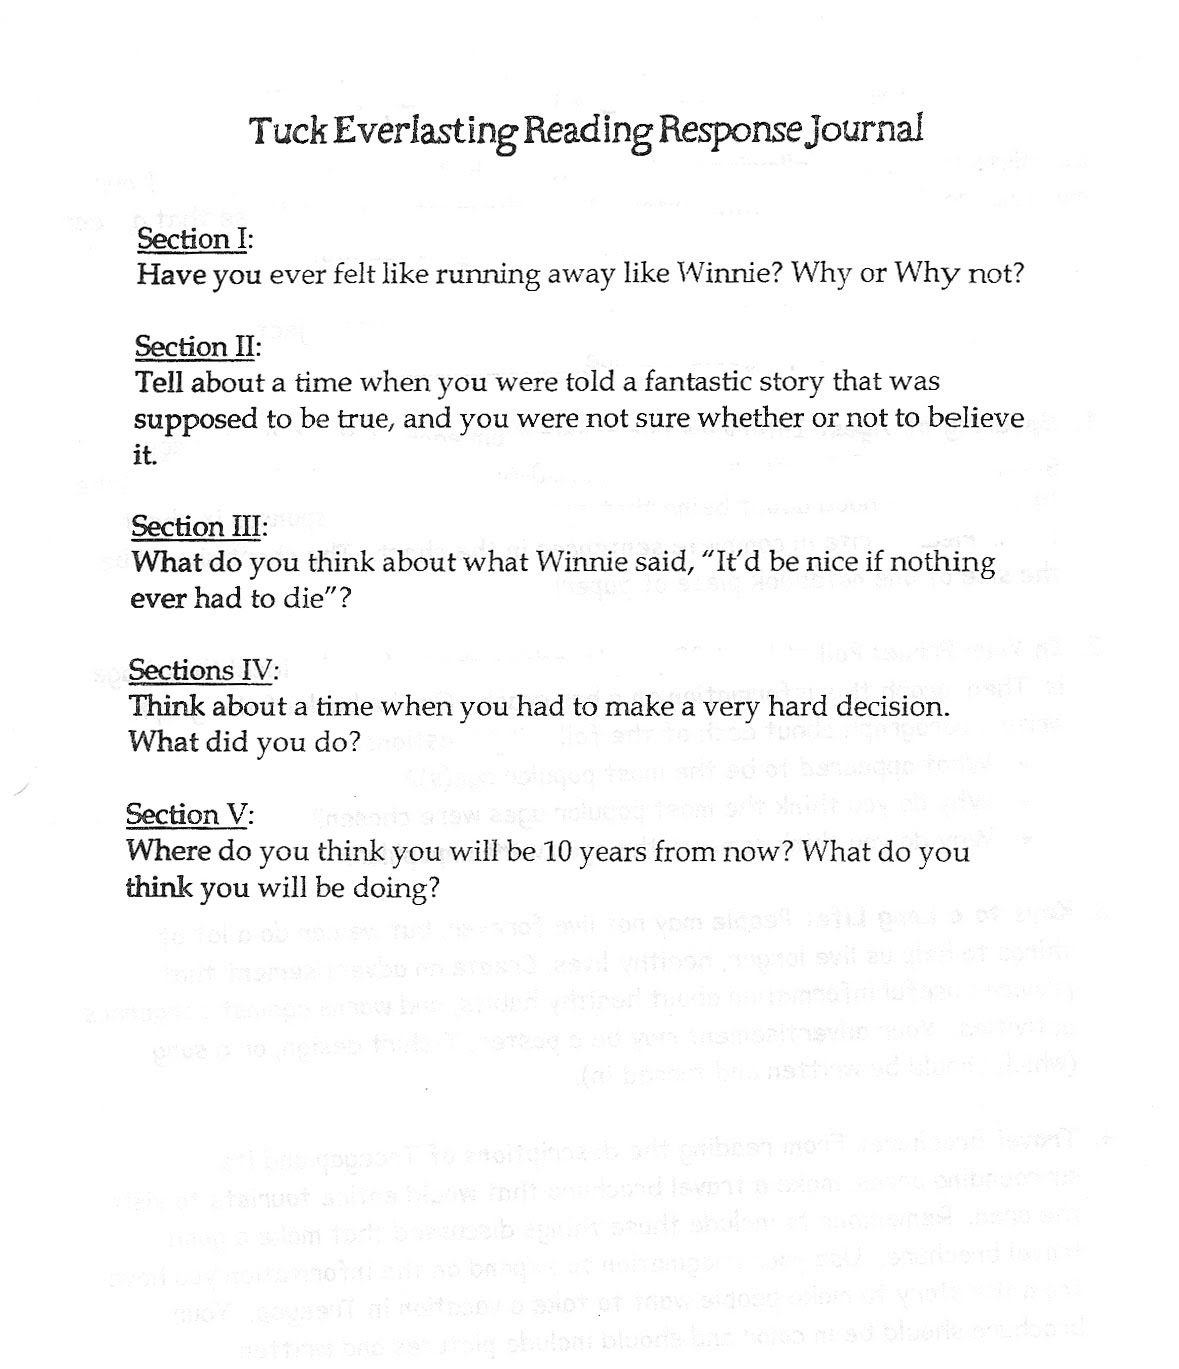 essay on tuck everlasting Tuck everlasting is the story of winnie foster, who encounters the tuck family during her exploration of the forest and is introduced to the concept of eternal life - tuck everlasting: written for children, better for adults essay introduction she comes from a very strict upbringing, with a mother who would rather put her in dressed and to.